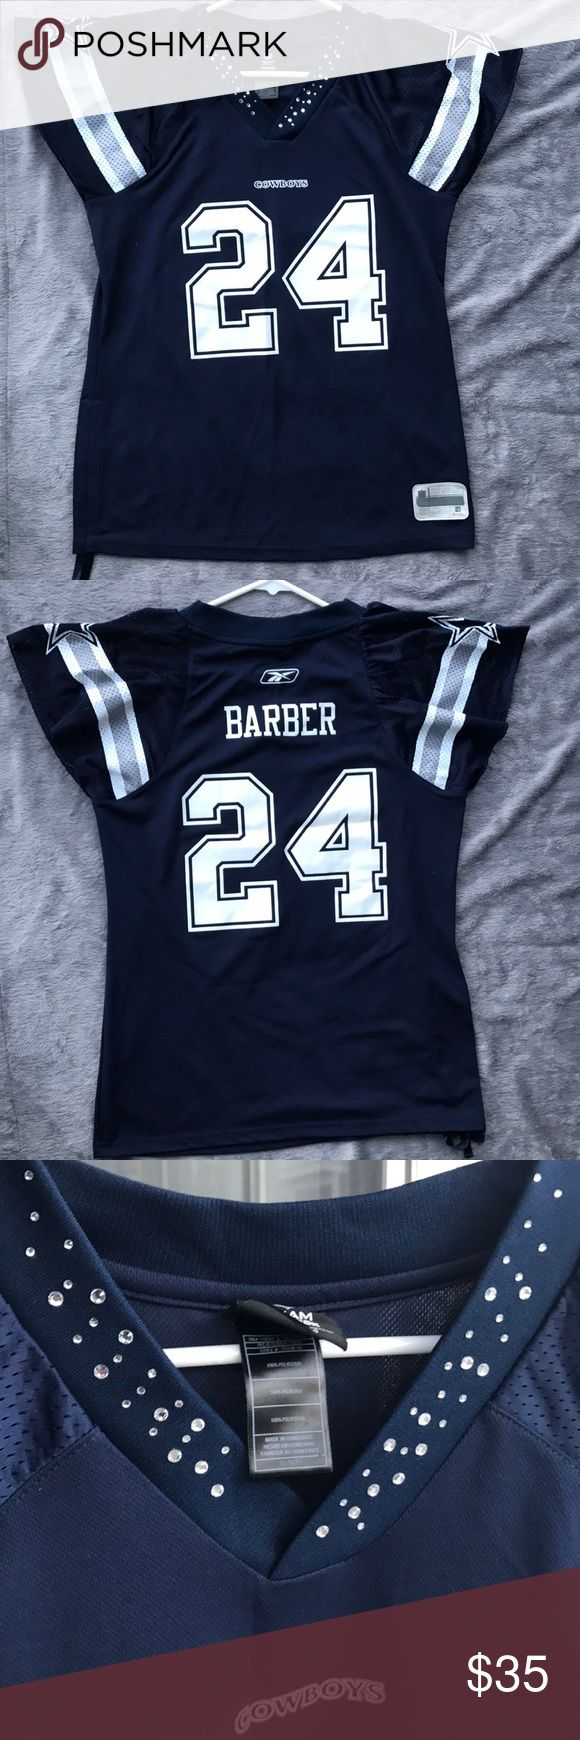 Reebok Rhinestone Dallas Cowboys Jersey #24 Barber Super flirty and girly Dallas Cowboys Jersey from the NFL store by Reebok!  Rhinestones around collar. Loose, short sleeves for feminine look. Fitted shape around waist without being tight. #24 Marion Barber. Size M. Drawstring on right side to make tighter and shorter if you want to. Reebok Tops